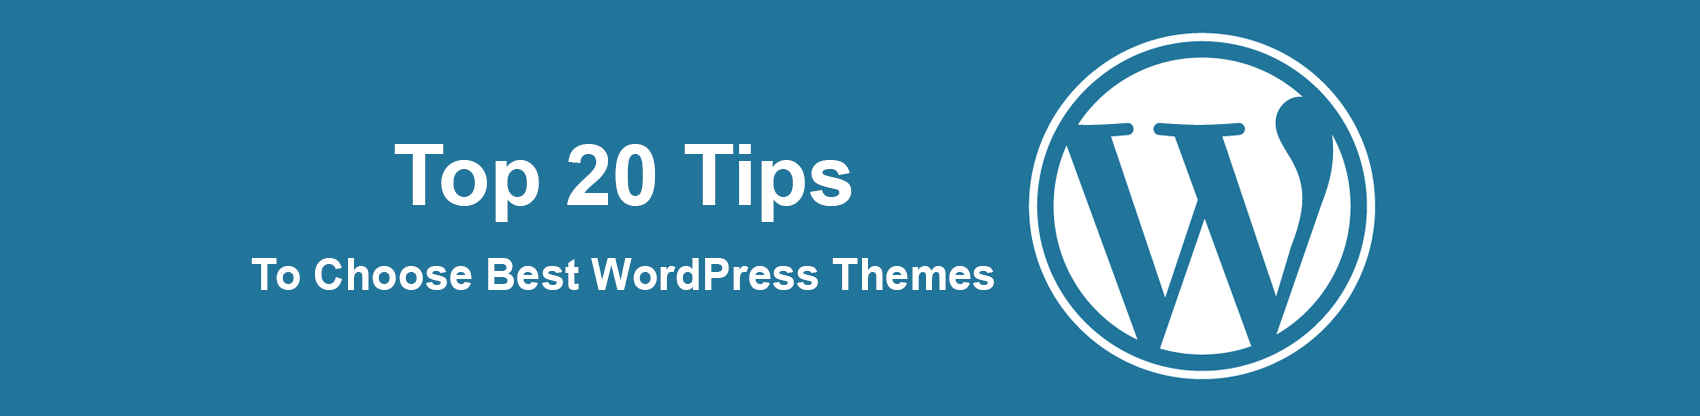 Top 20 Tips to Choose Best WordPress Themes